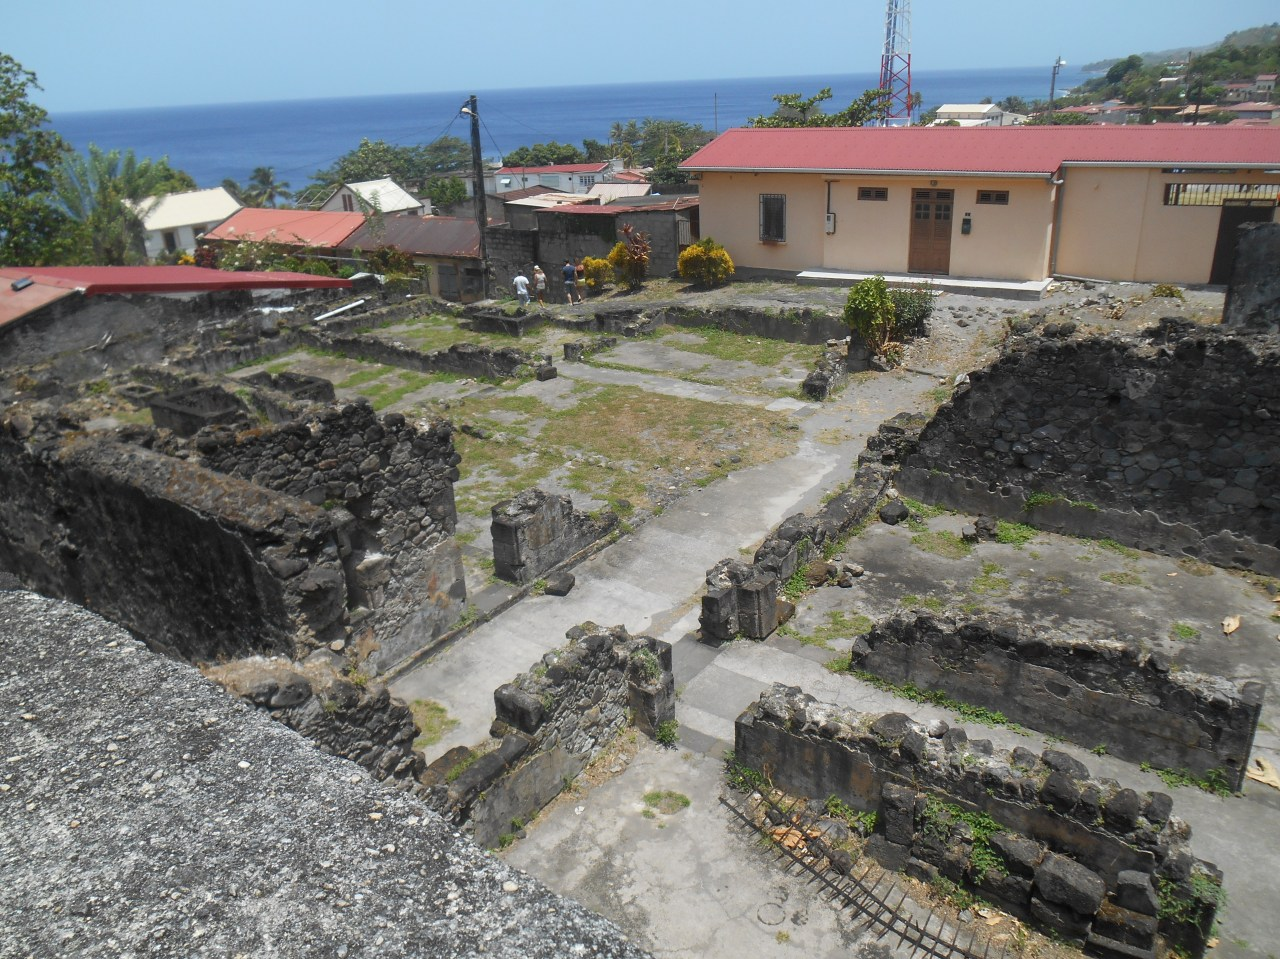 ruines-prison-saint-pierre-martinique.jpg